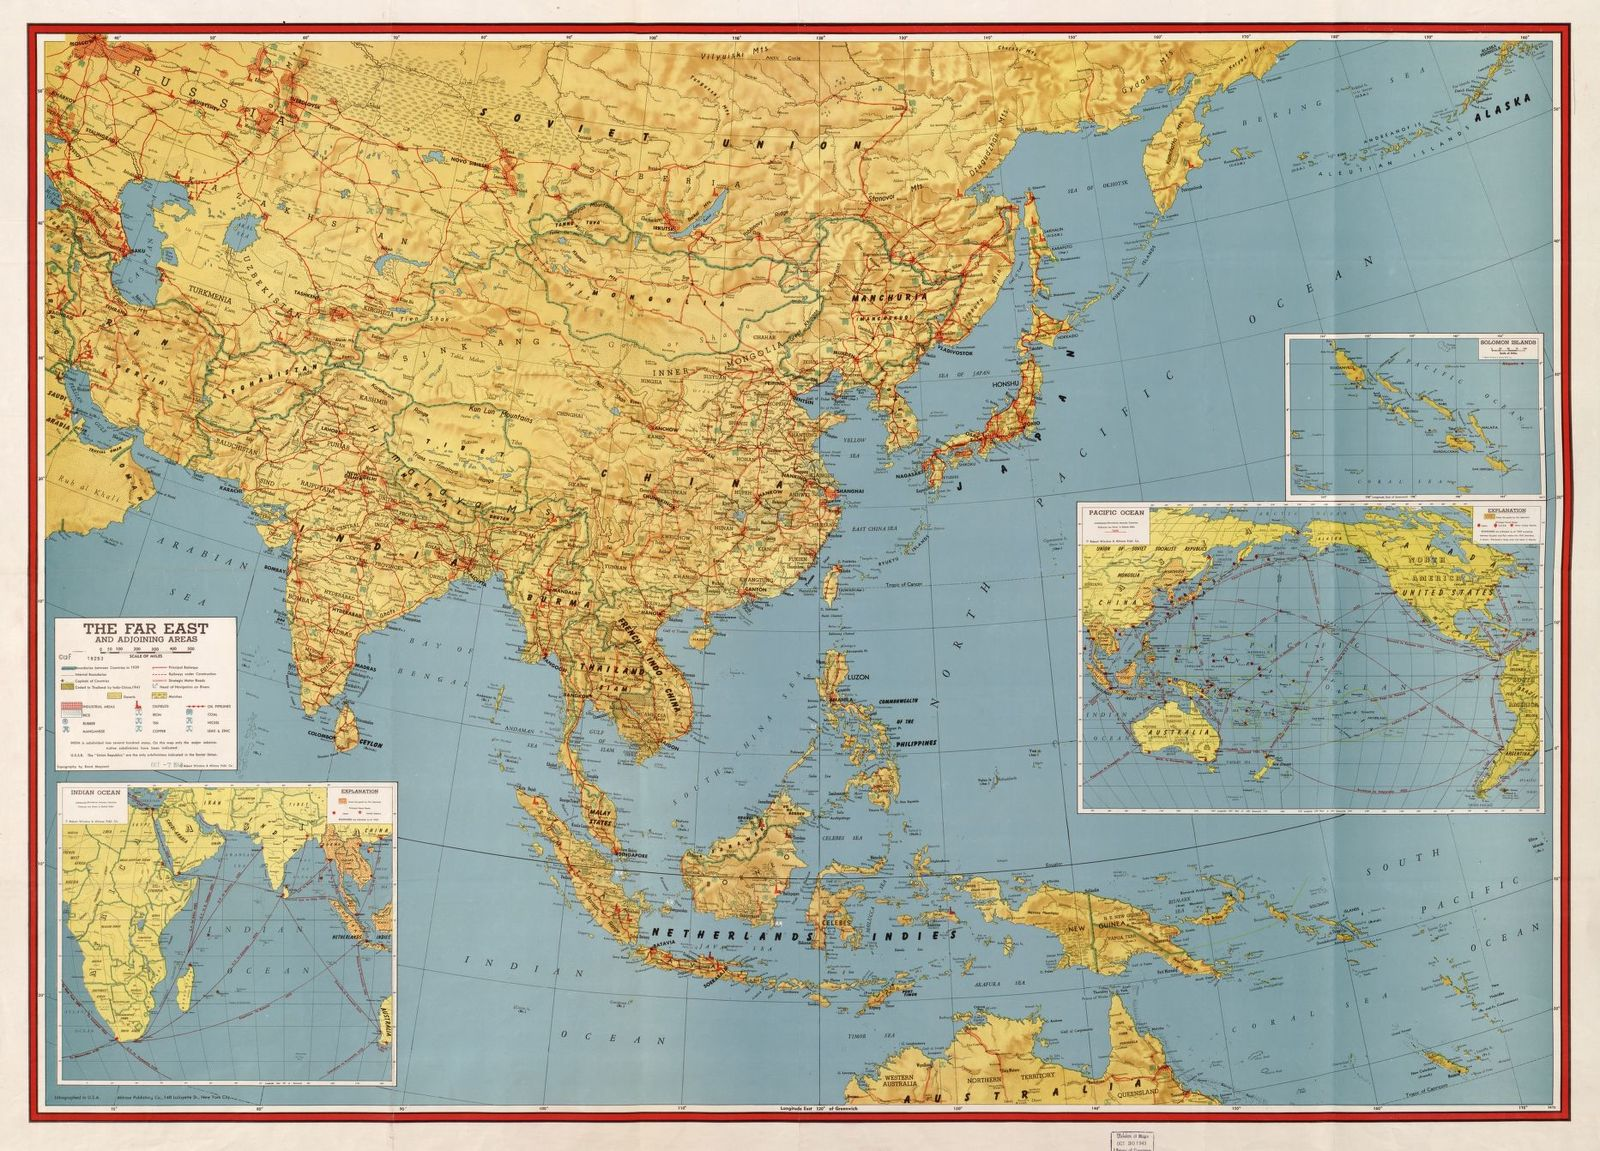 The Far East and adjoining areas /